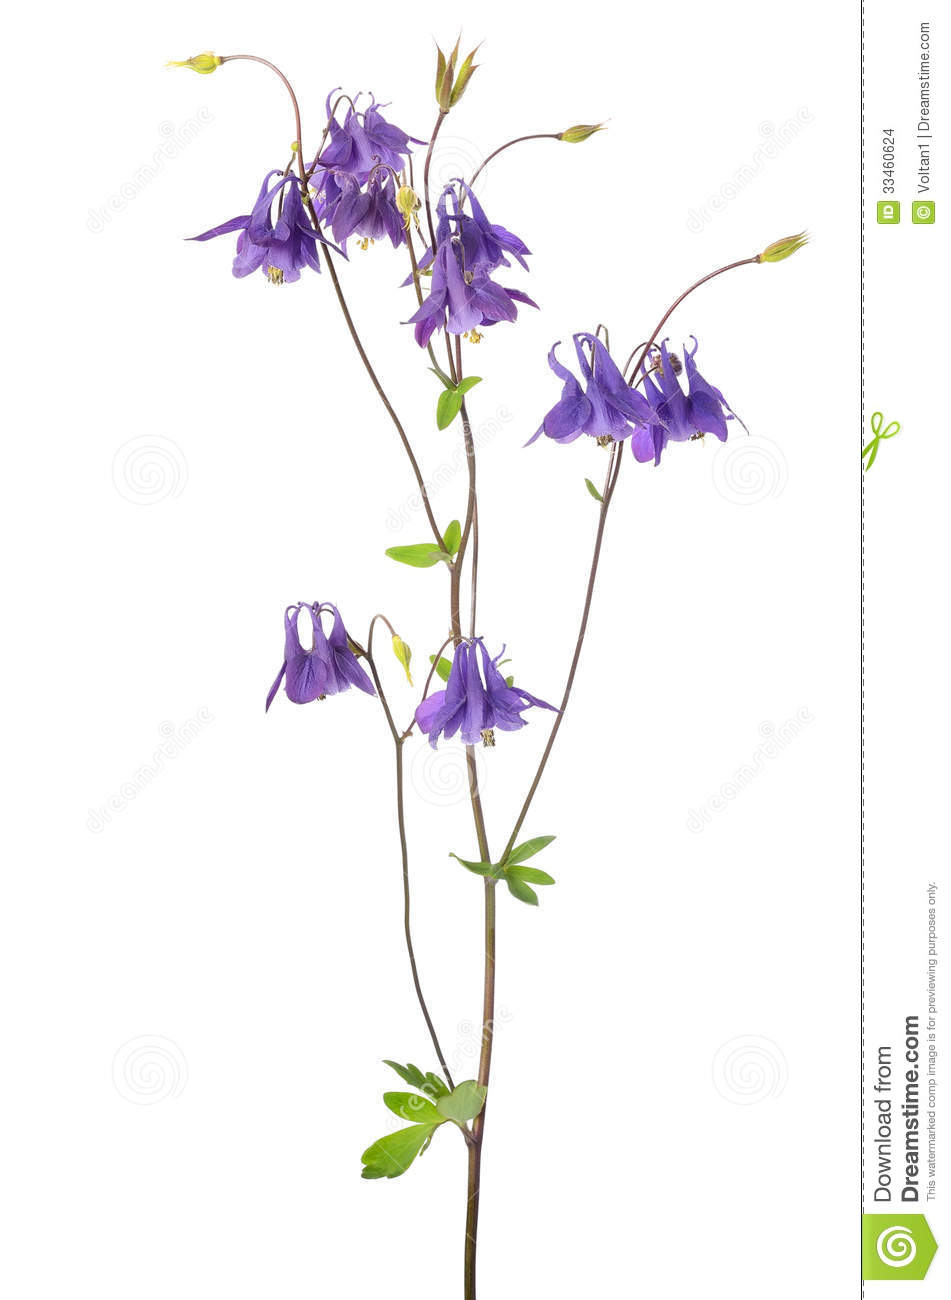 Aquilegia Vulgaris Flower Stock Images.